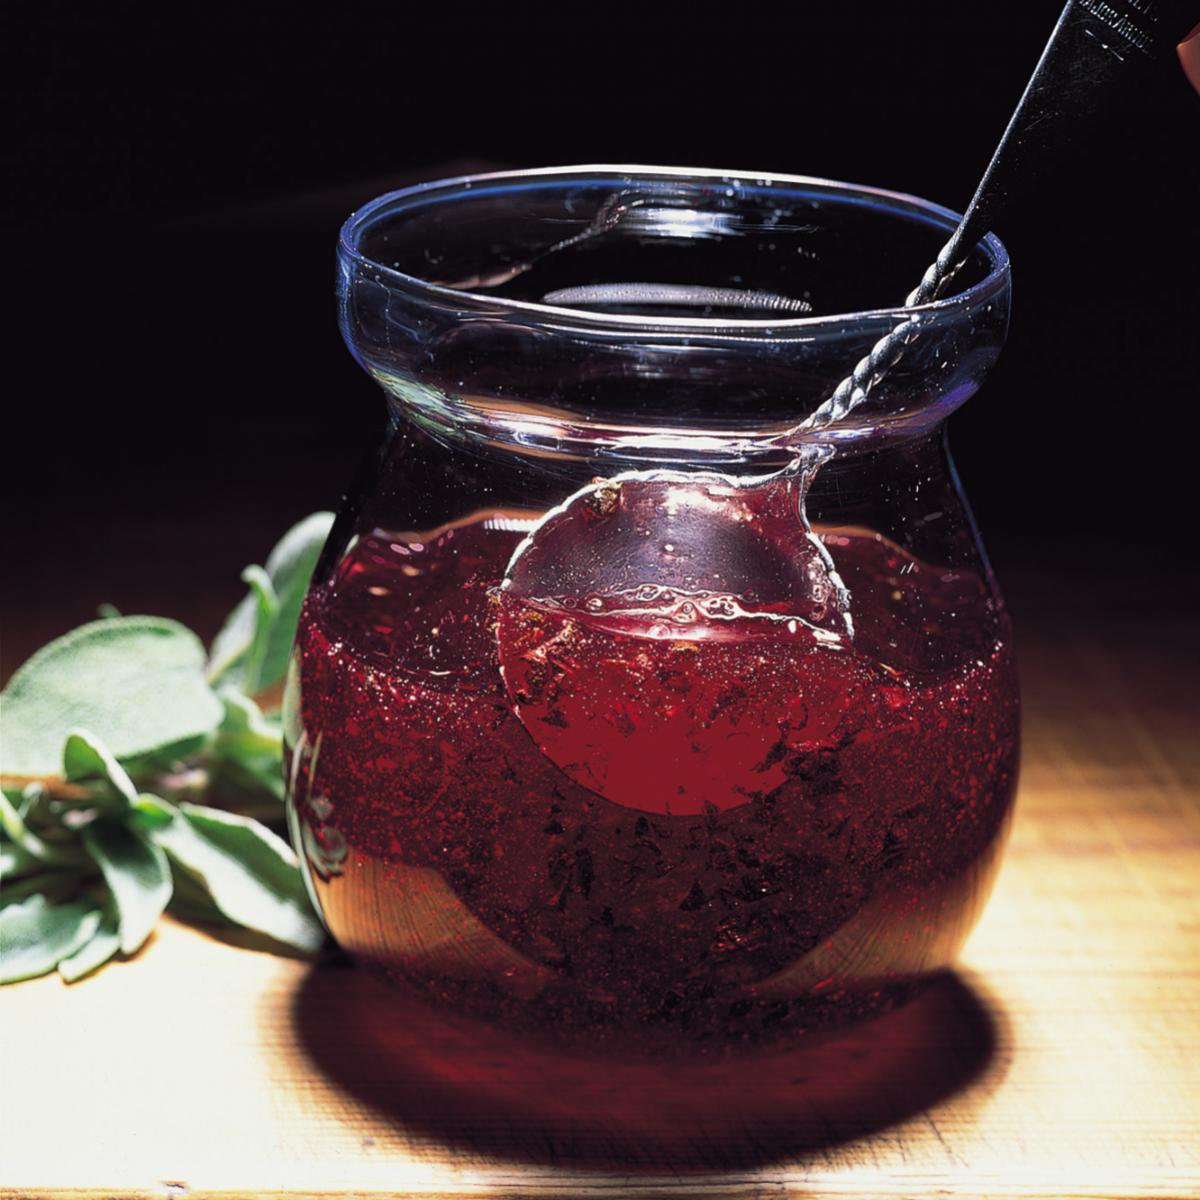 A picture of Delia's Cranberry, Sage and Balsamic Sauce recipe